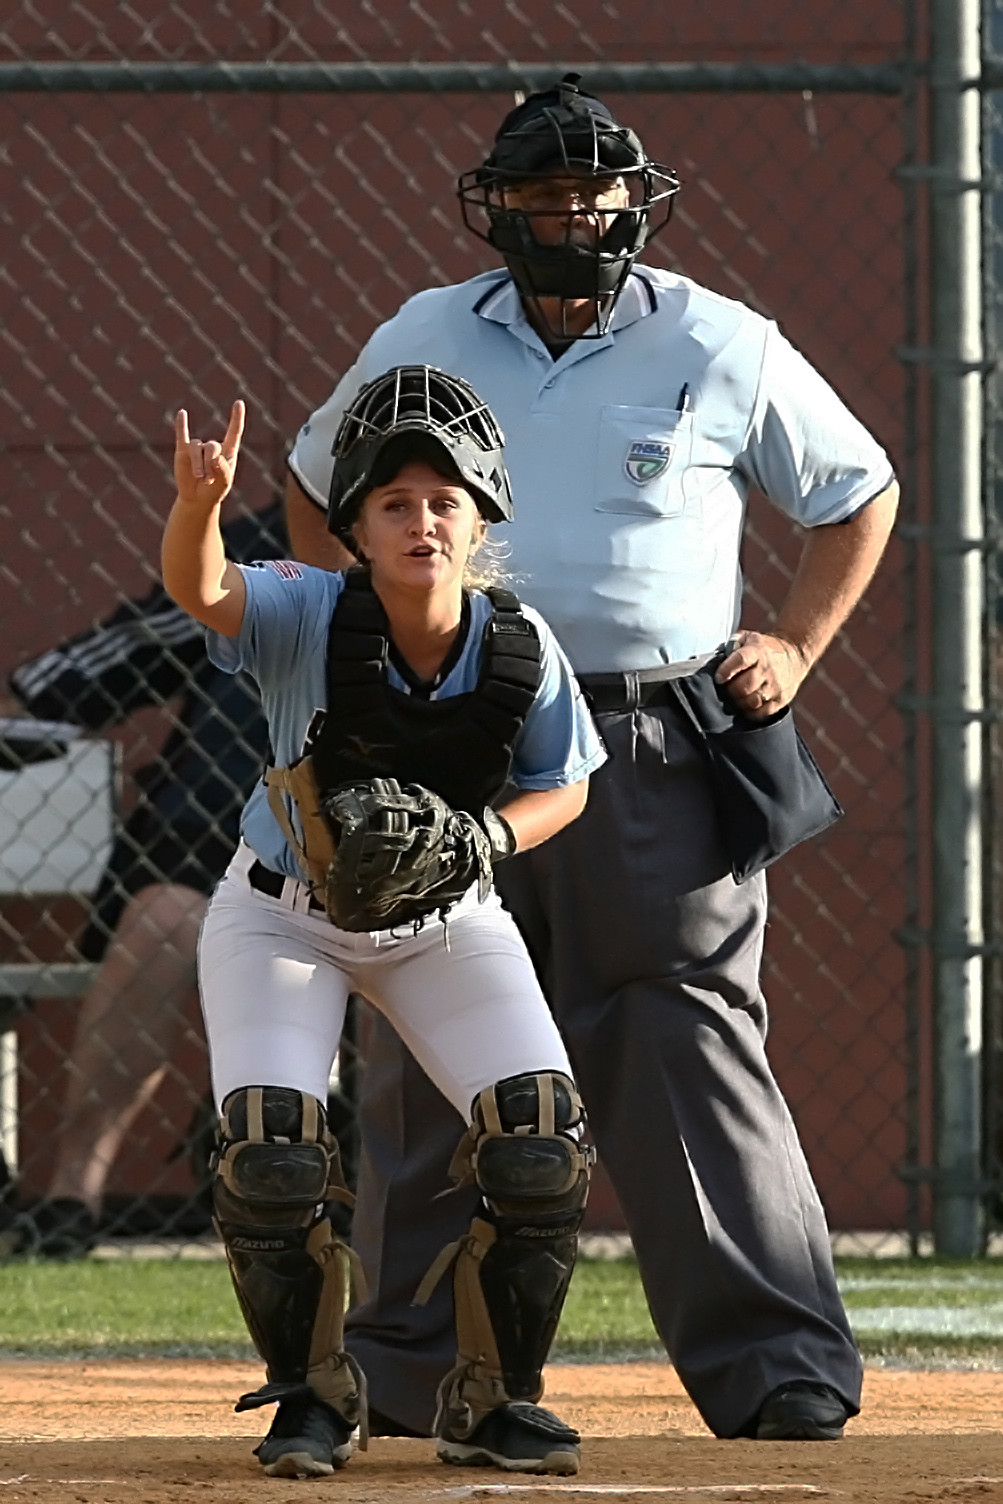 Shark catcher Taylor Bradshaw signals to her teammates that there are two outs in the inning.